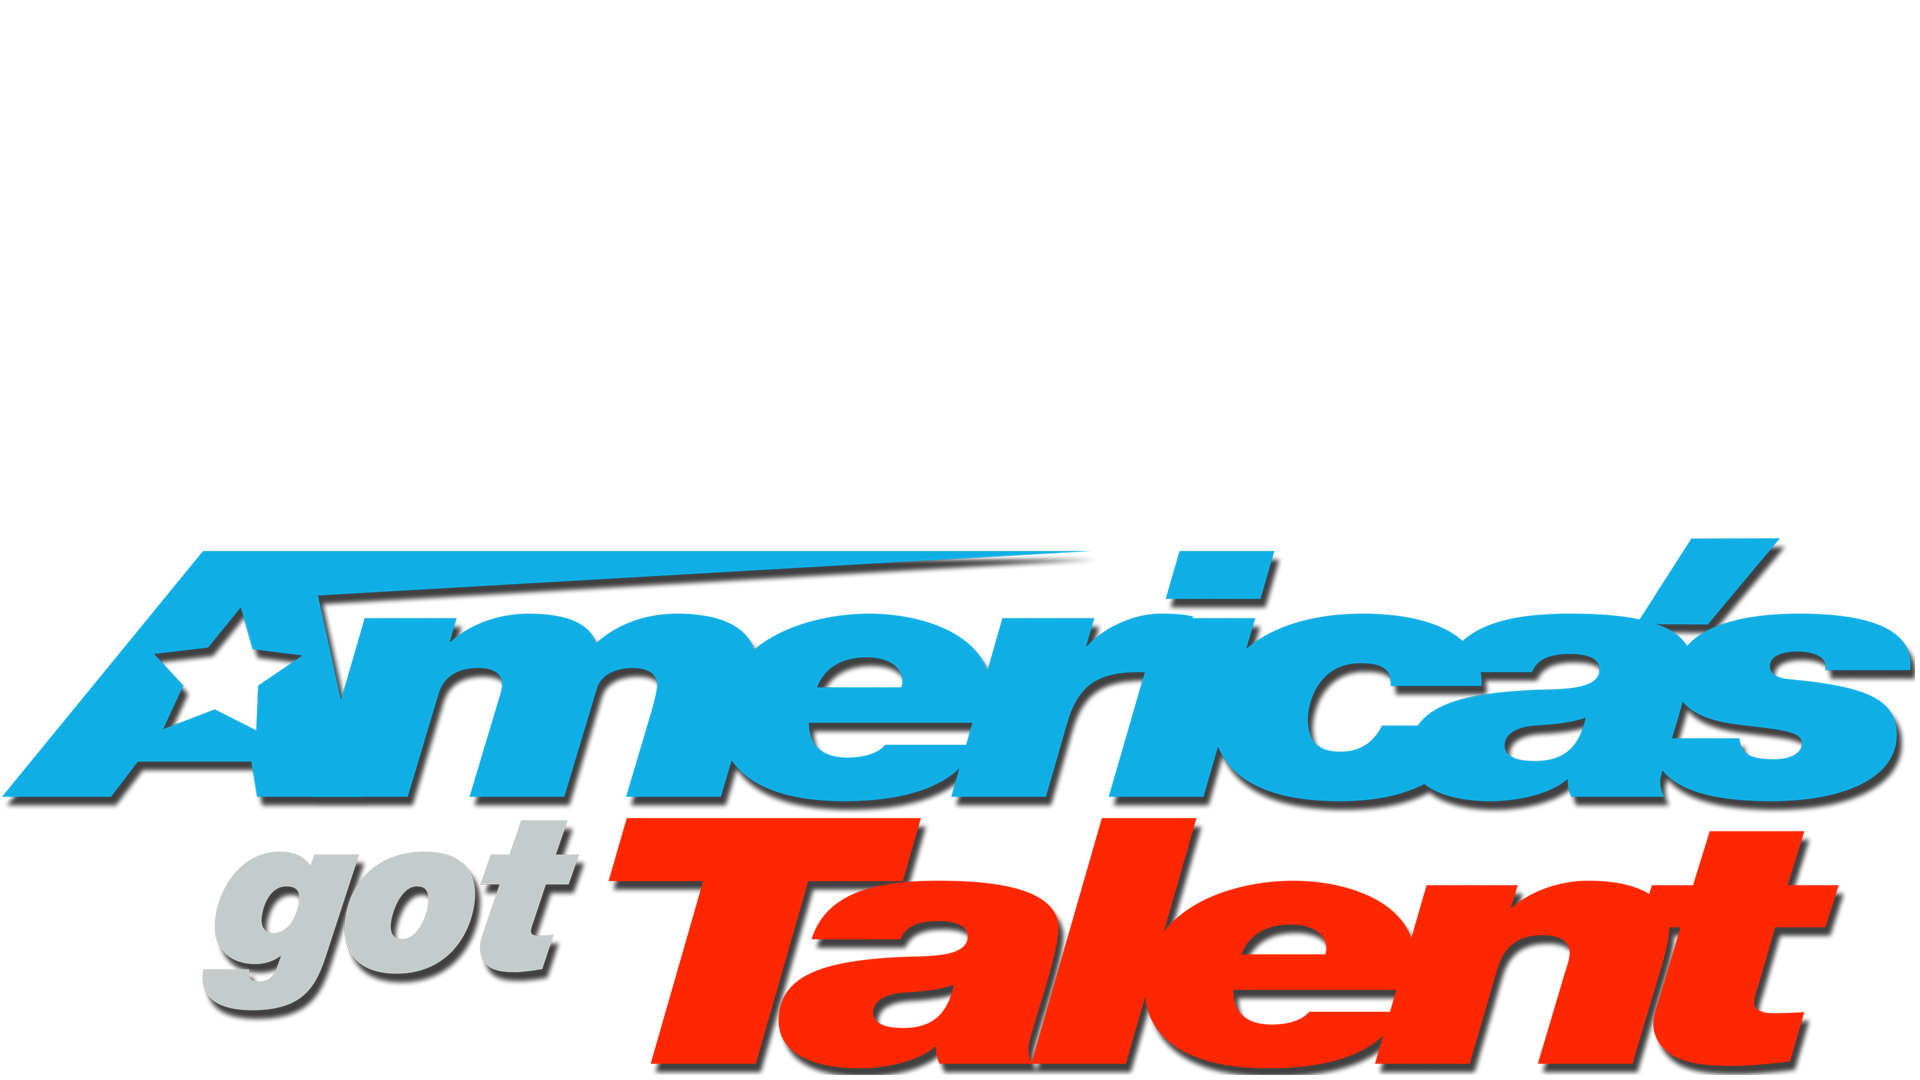 Americas got talent logo png 7 » PNG Image.